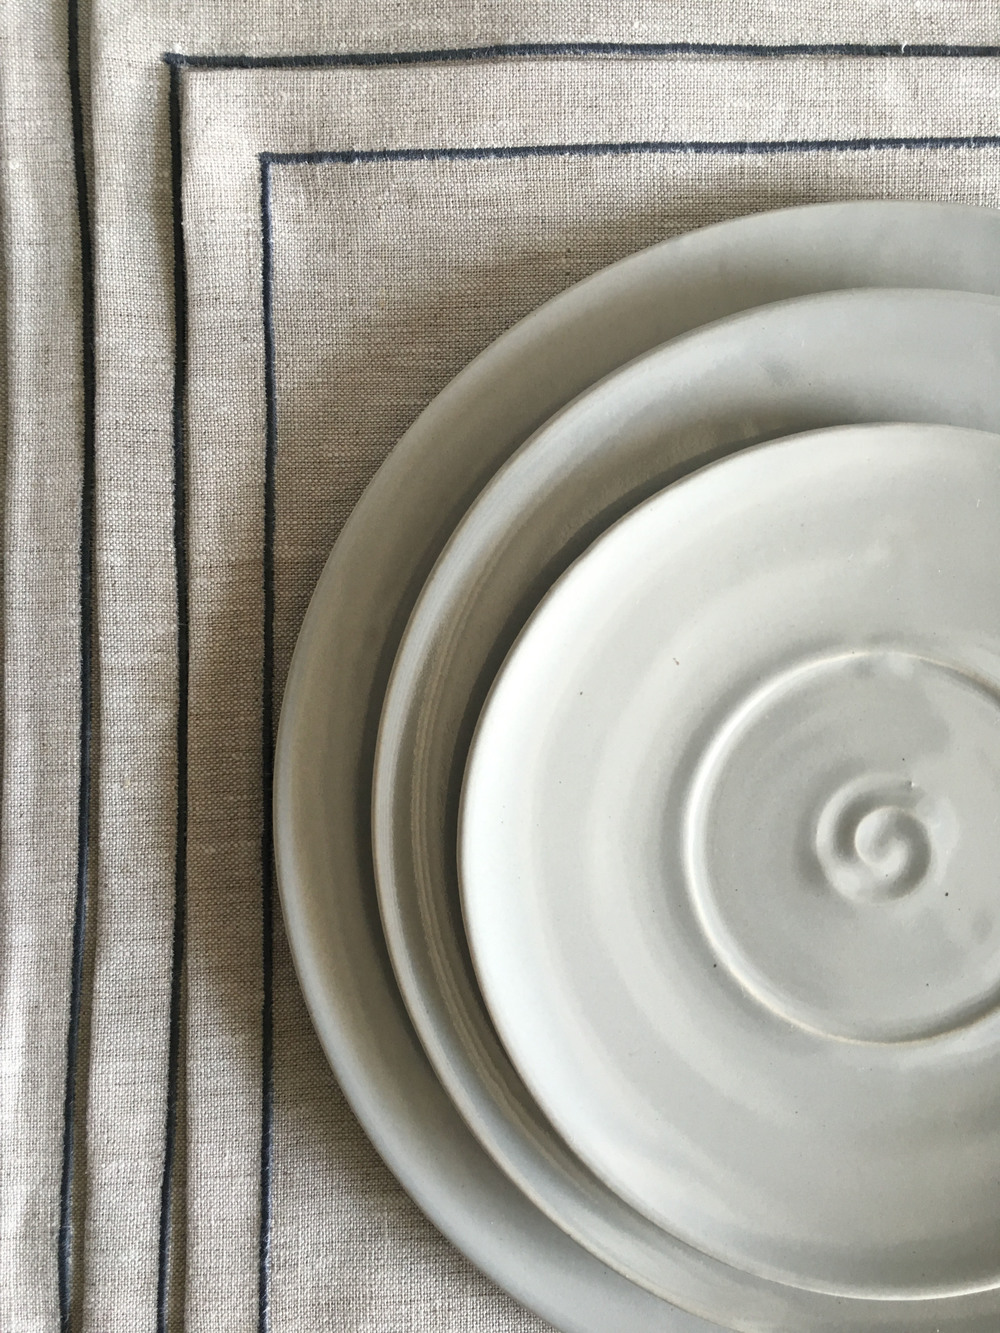 ANI KASTEN CERAMICS AND LINEN PLACEMATS. DARRYL CARTER BOUTIQUE. WSHINGTON DC.